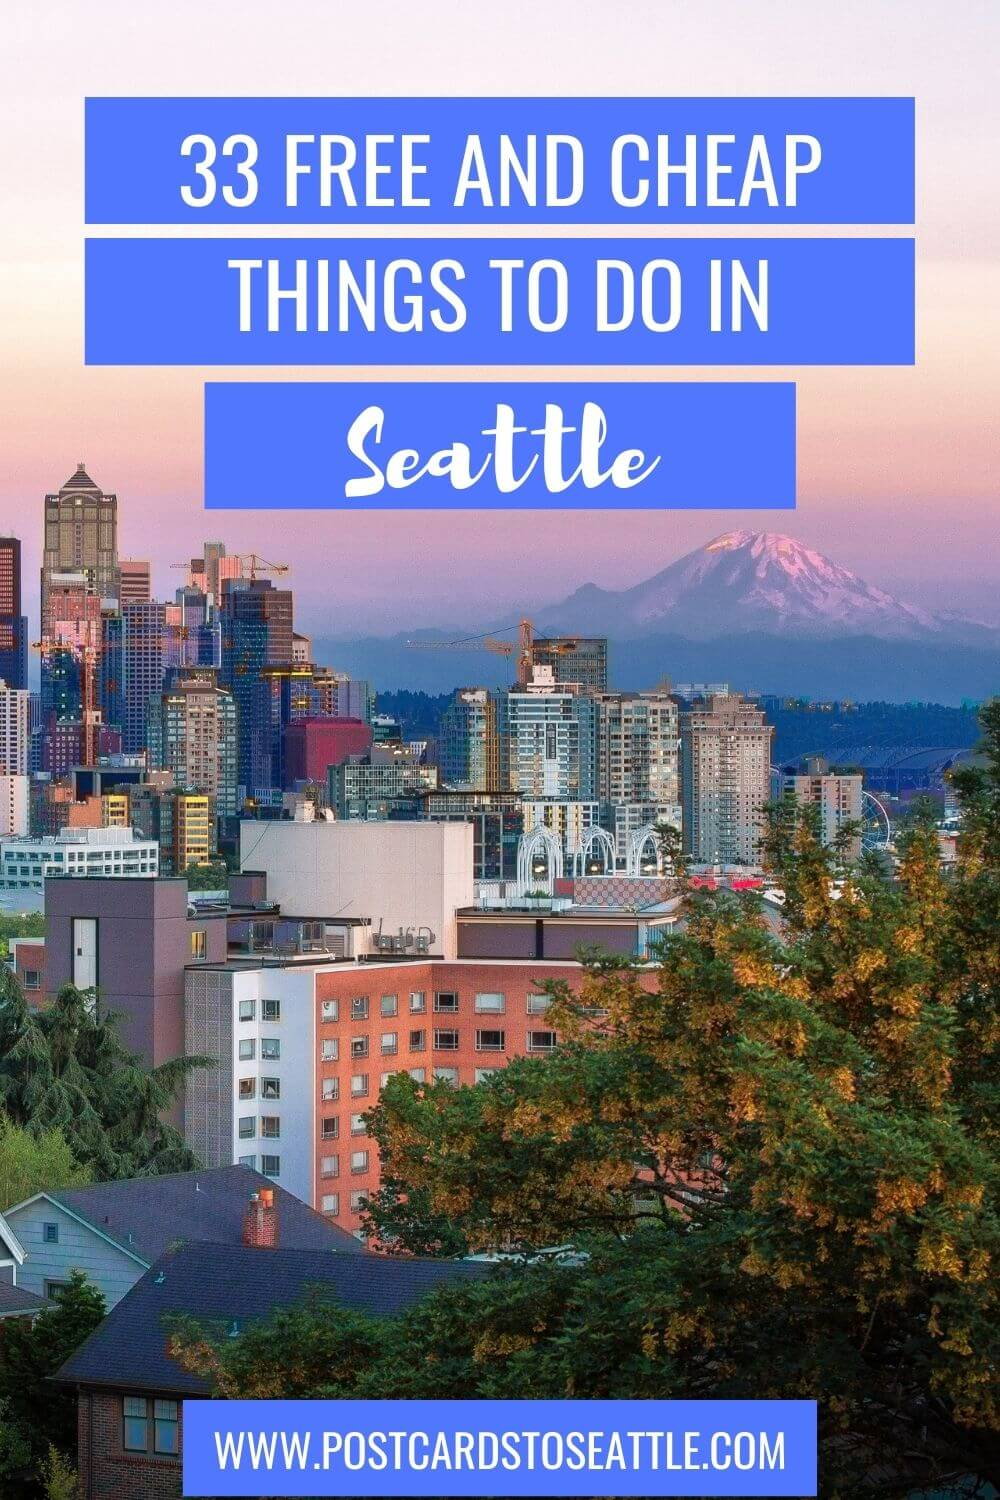 33 Free and Cheap Things to Do in Seattle on a Budget